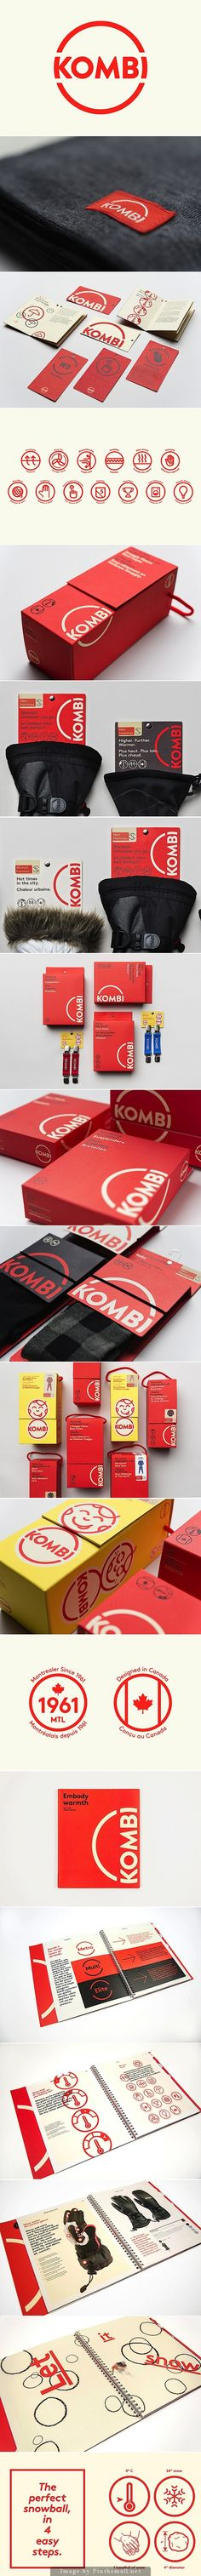 Love Kombi product identity, packaging branding, neat color scheme with natural yet popping color Gfx Design, Design Logo, Brand Identity Design, Graphic Design Branding, Corporate Design, Corporate Identity, Visual Identity, Brochure Design, Design Agency